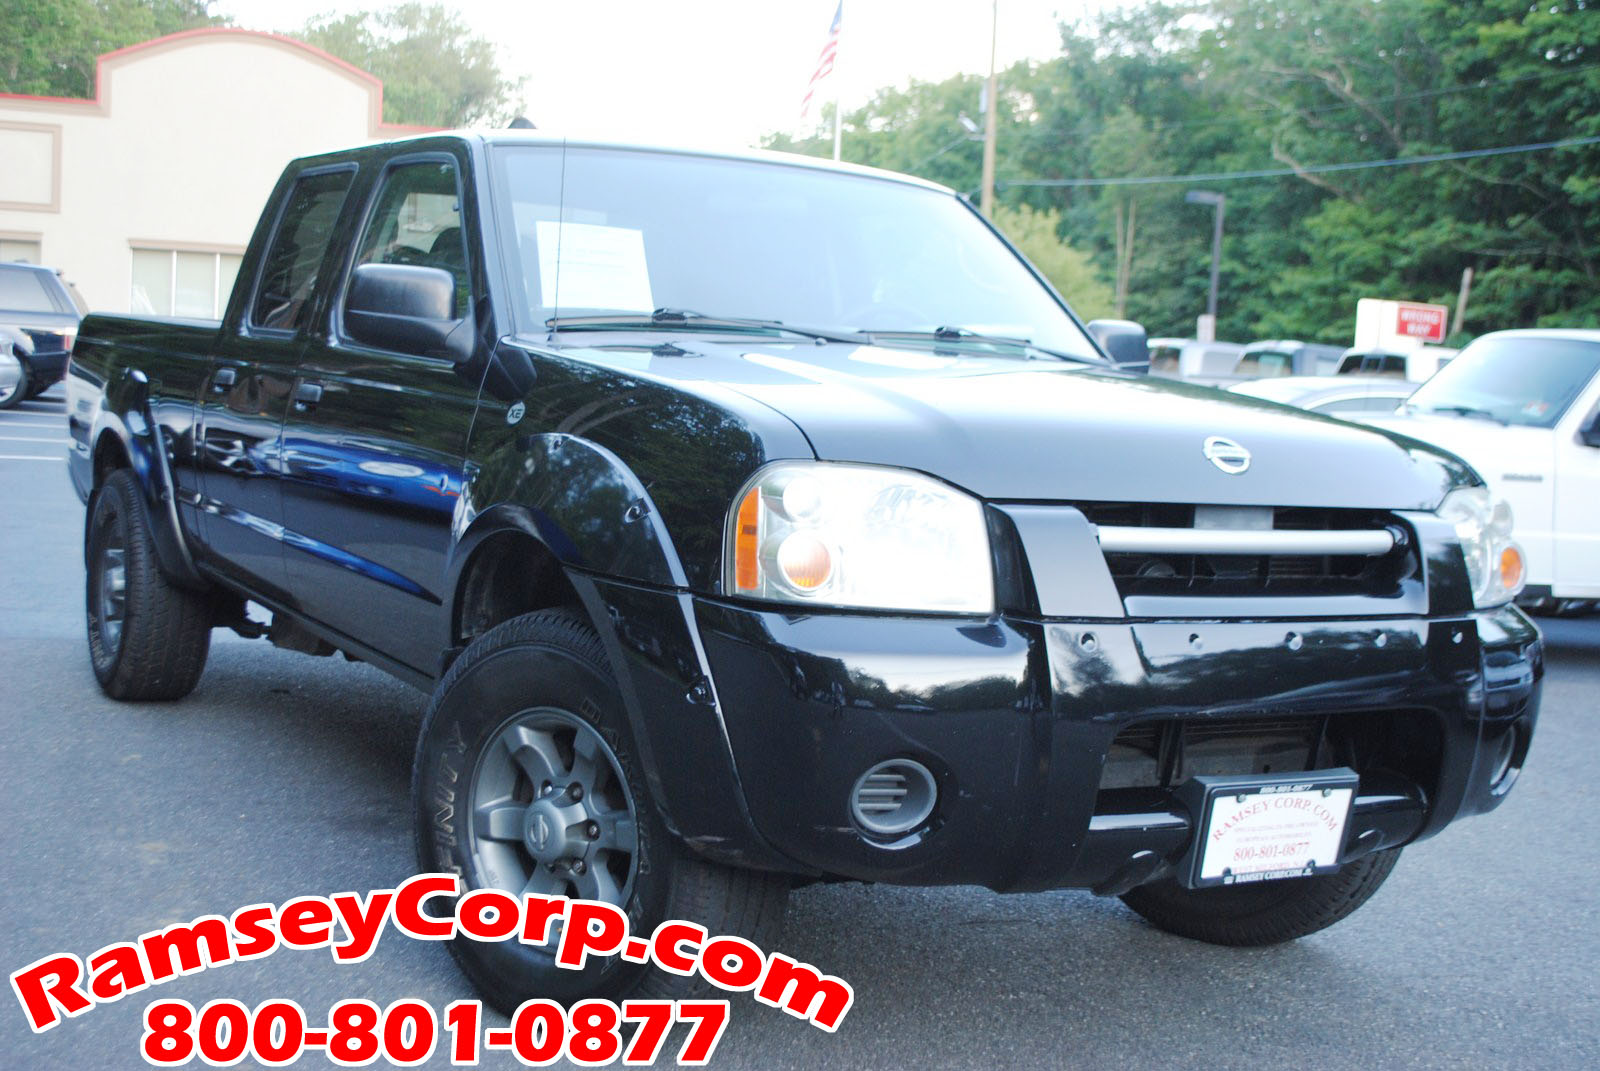 Used 2004 nissan frontier for sale west milford nj 2004 nissan frontier xe 33 truck long bed crew cab vanachro Image collections